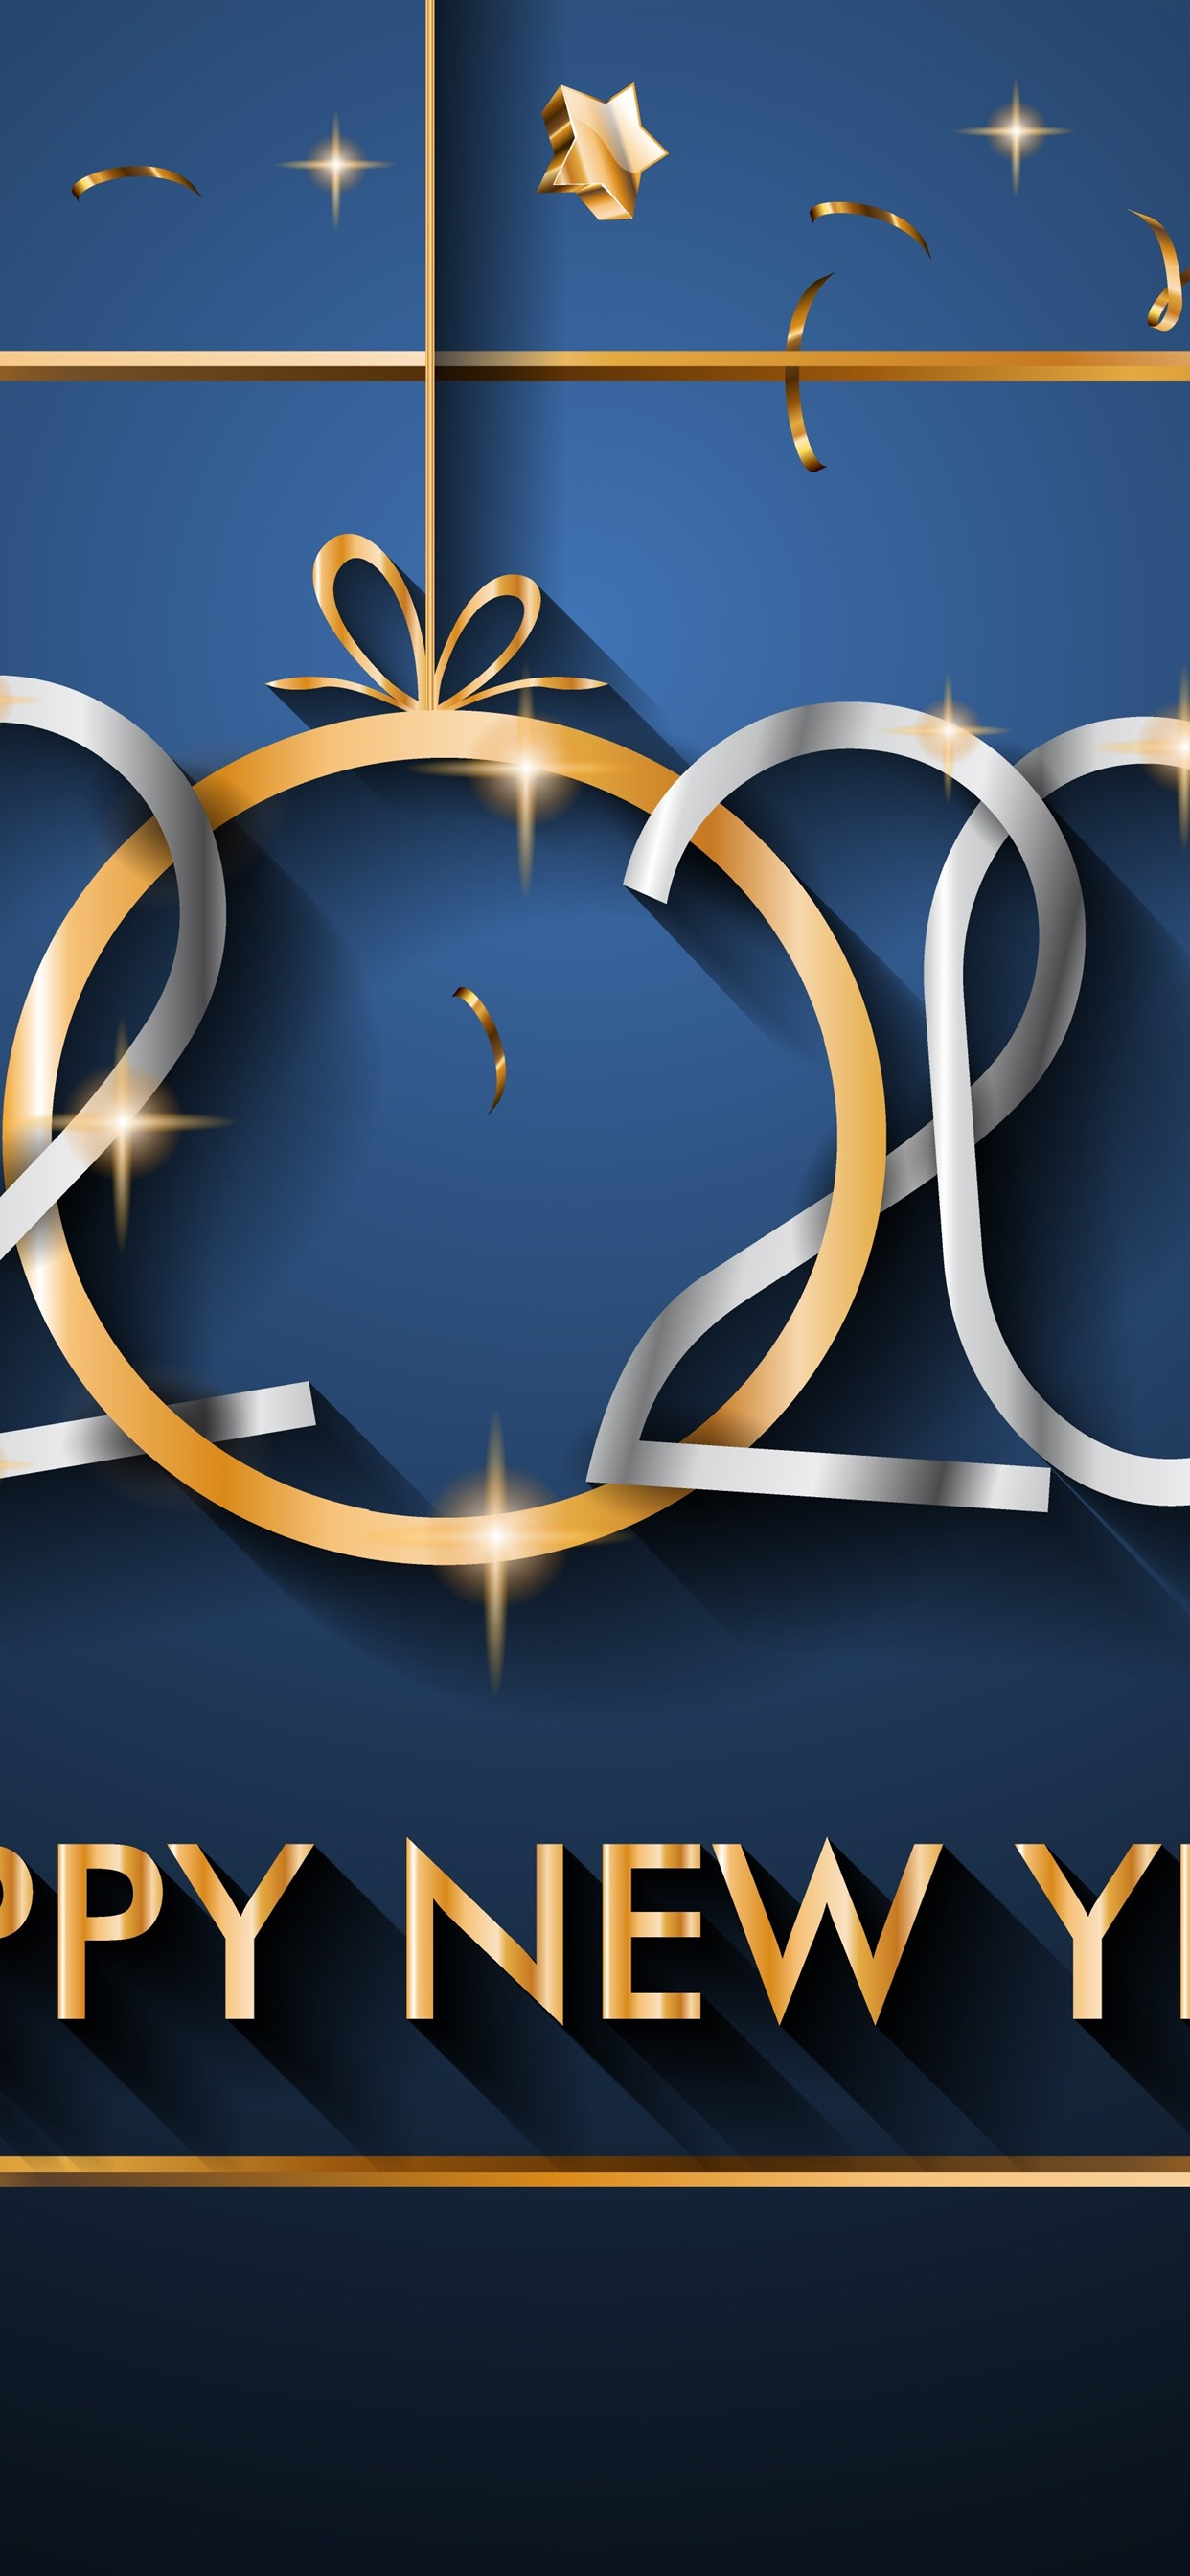 Happy New Year 2020 Stars Golden 1242x2688 Iphone 11 Pro Xs Max Wallpaper Background Picture Image